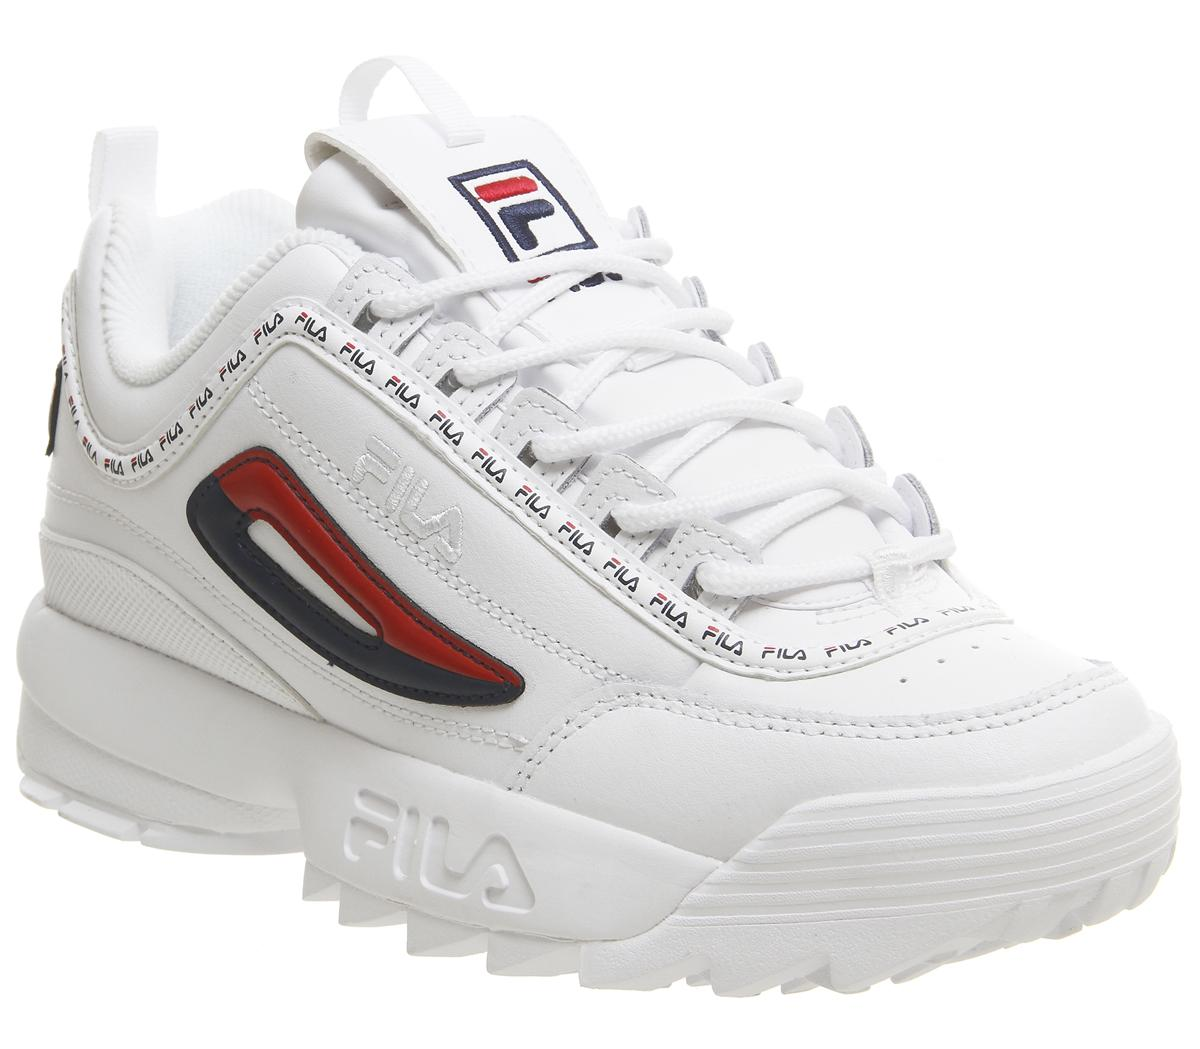 Fila Disruptor II Trainers White Repeat - Hers trainers